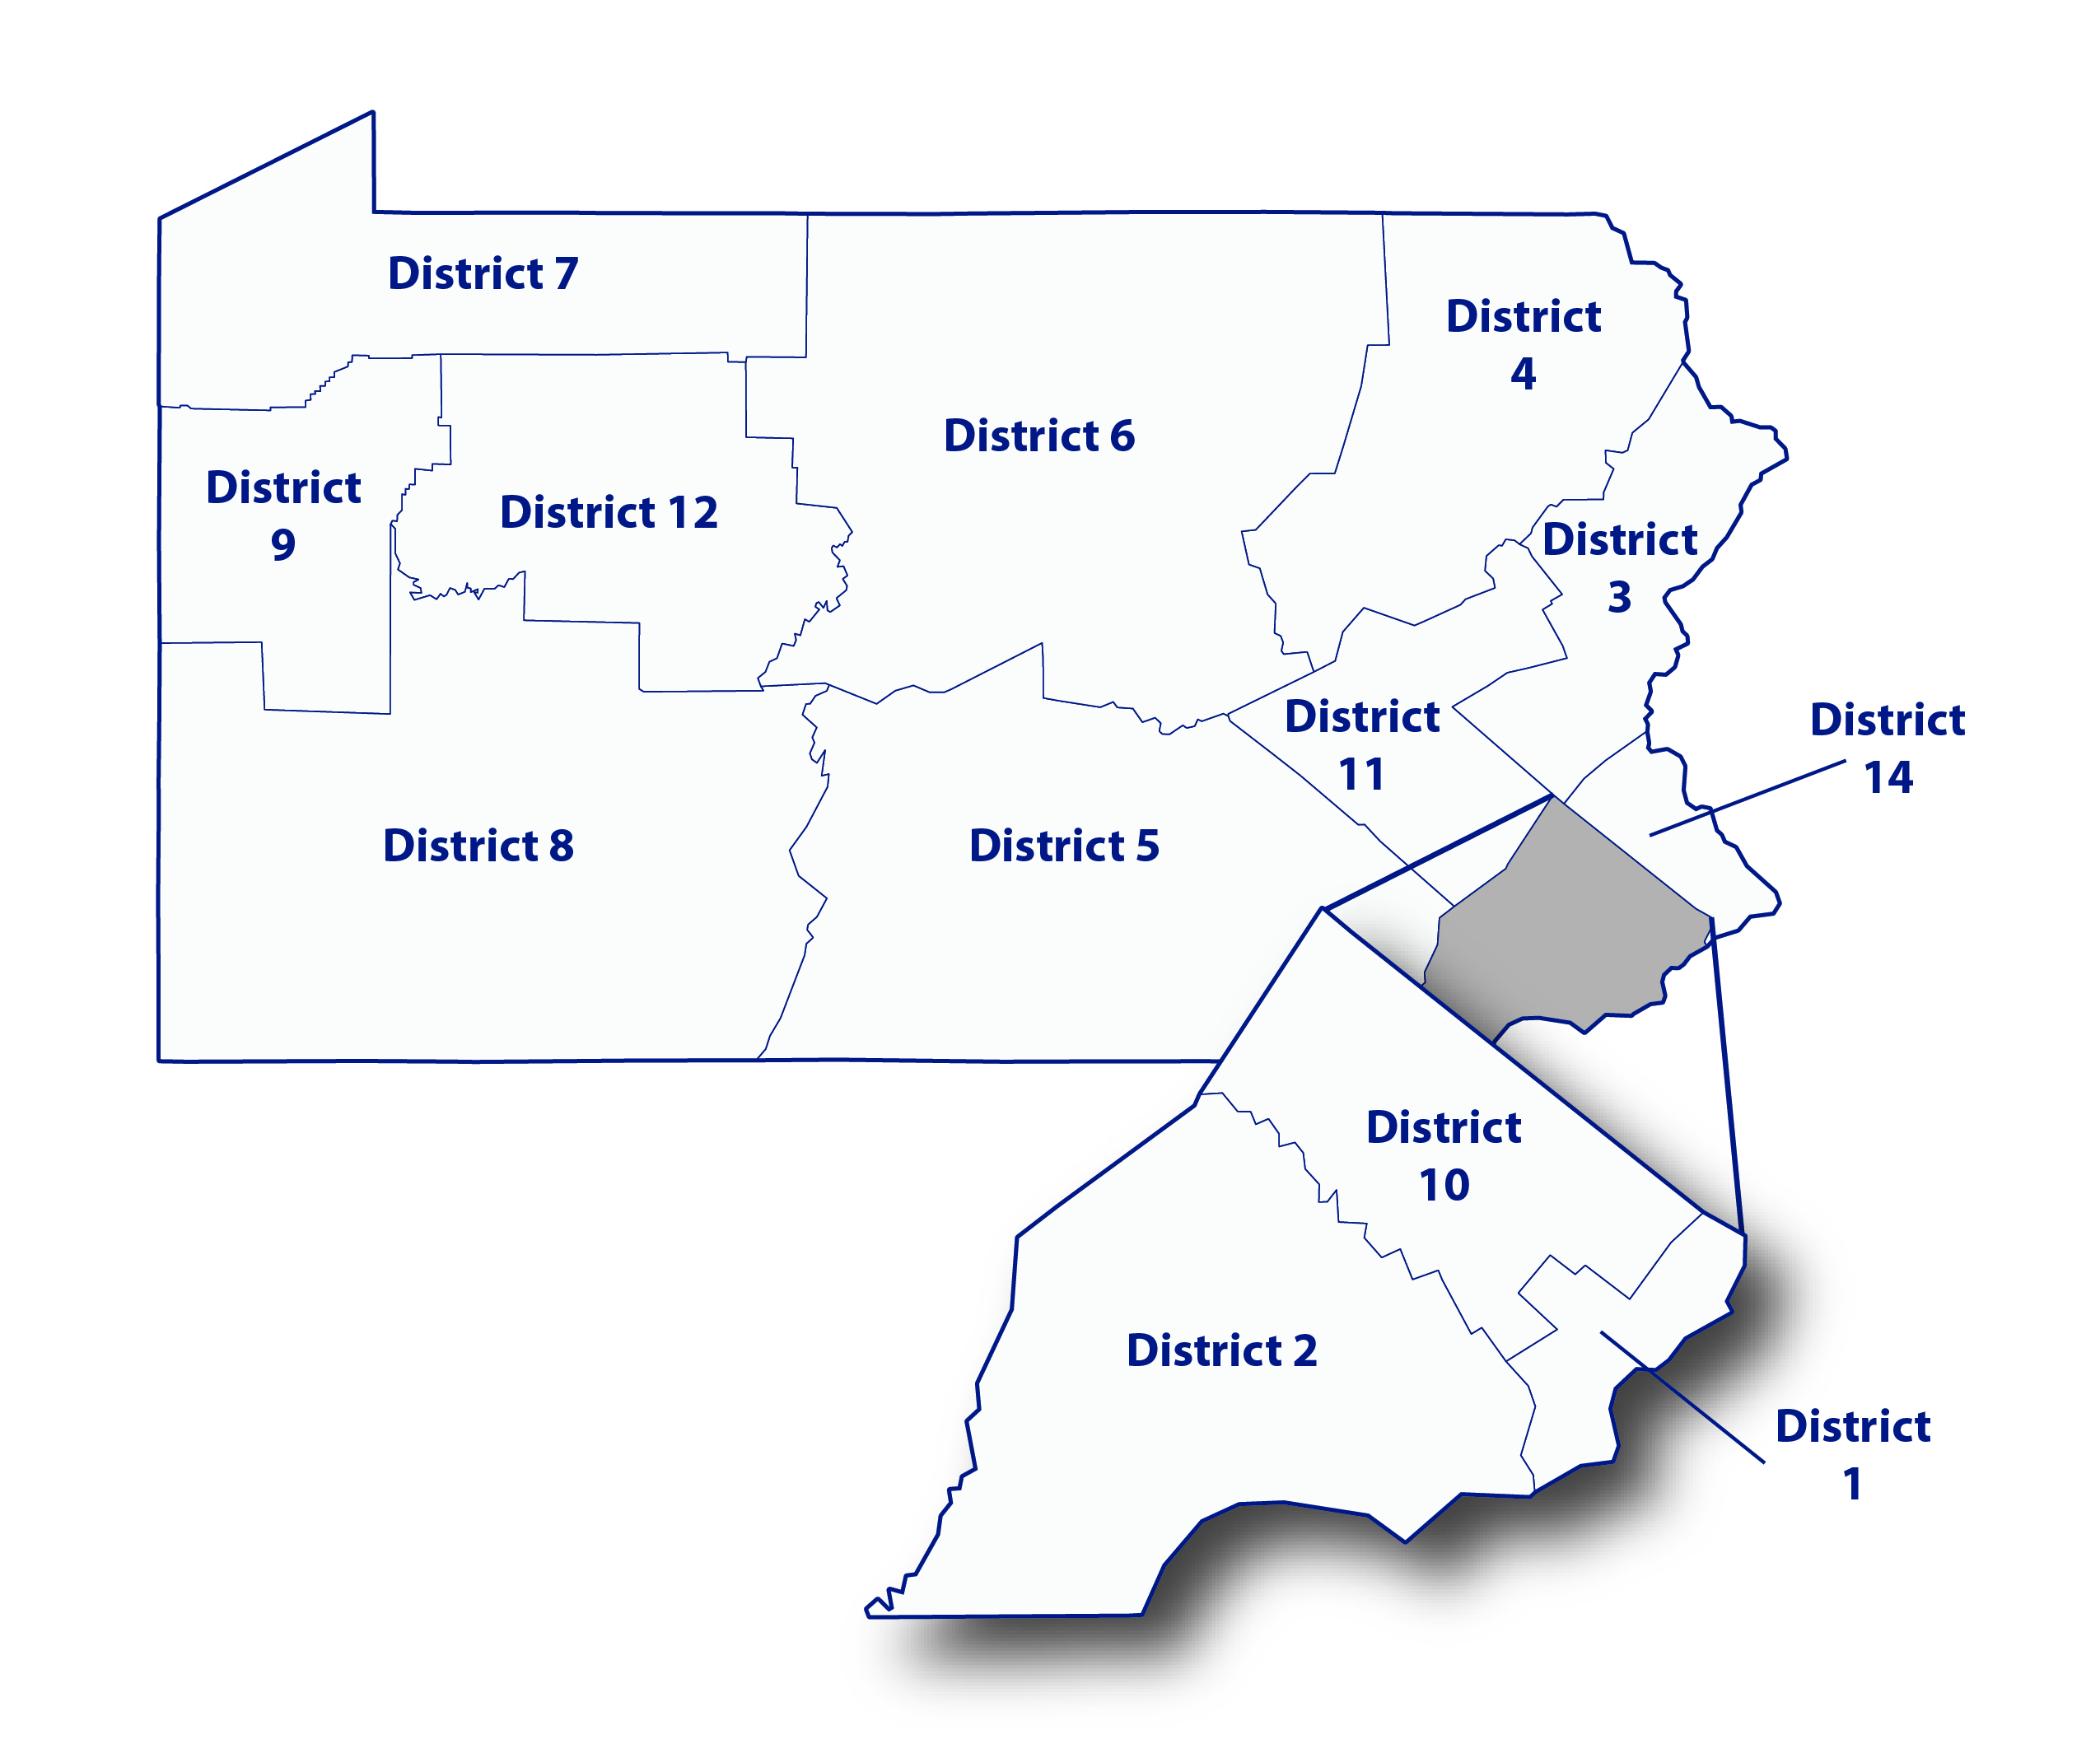 Map of POMA districts